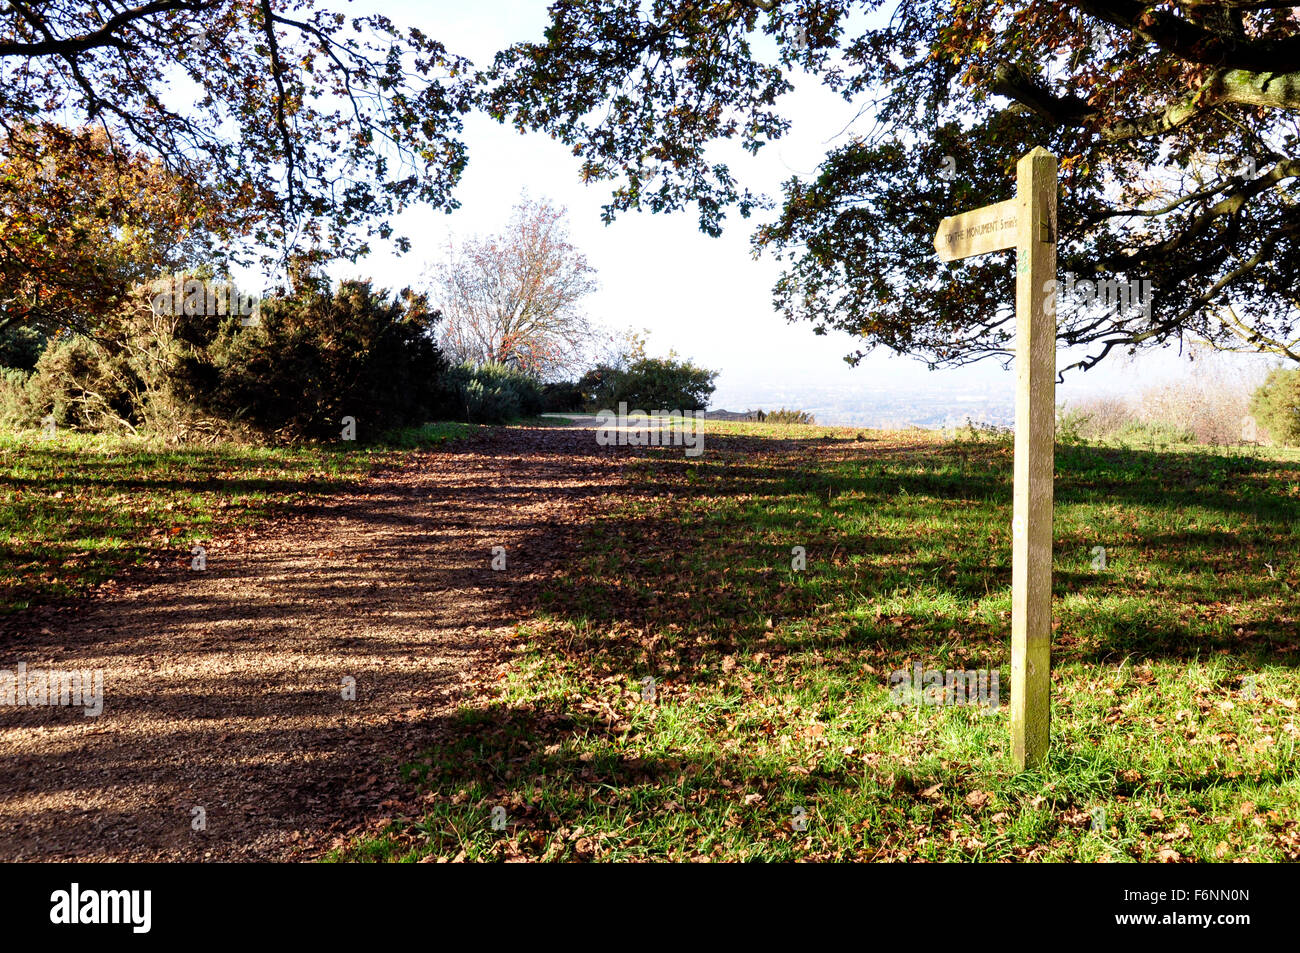 Chiltern Hills - on Beacon Hill - footpath - finger post - to view over Aylesbury Plain - sunlight and shadows  - Stock Image